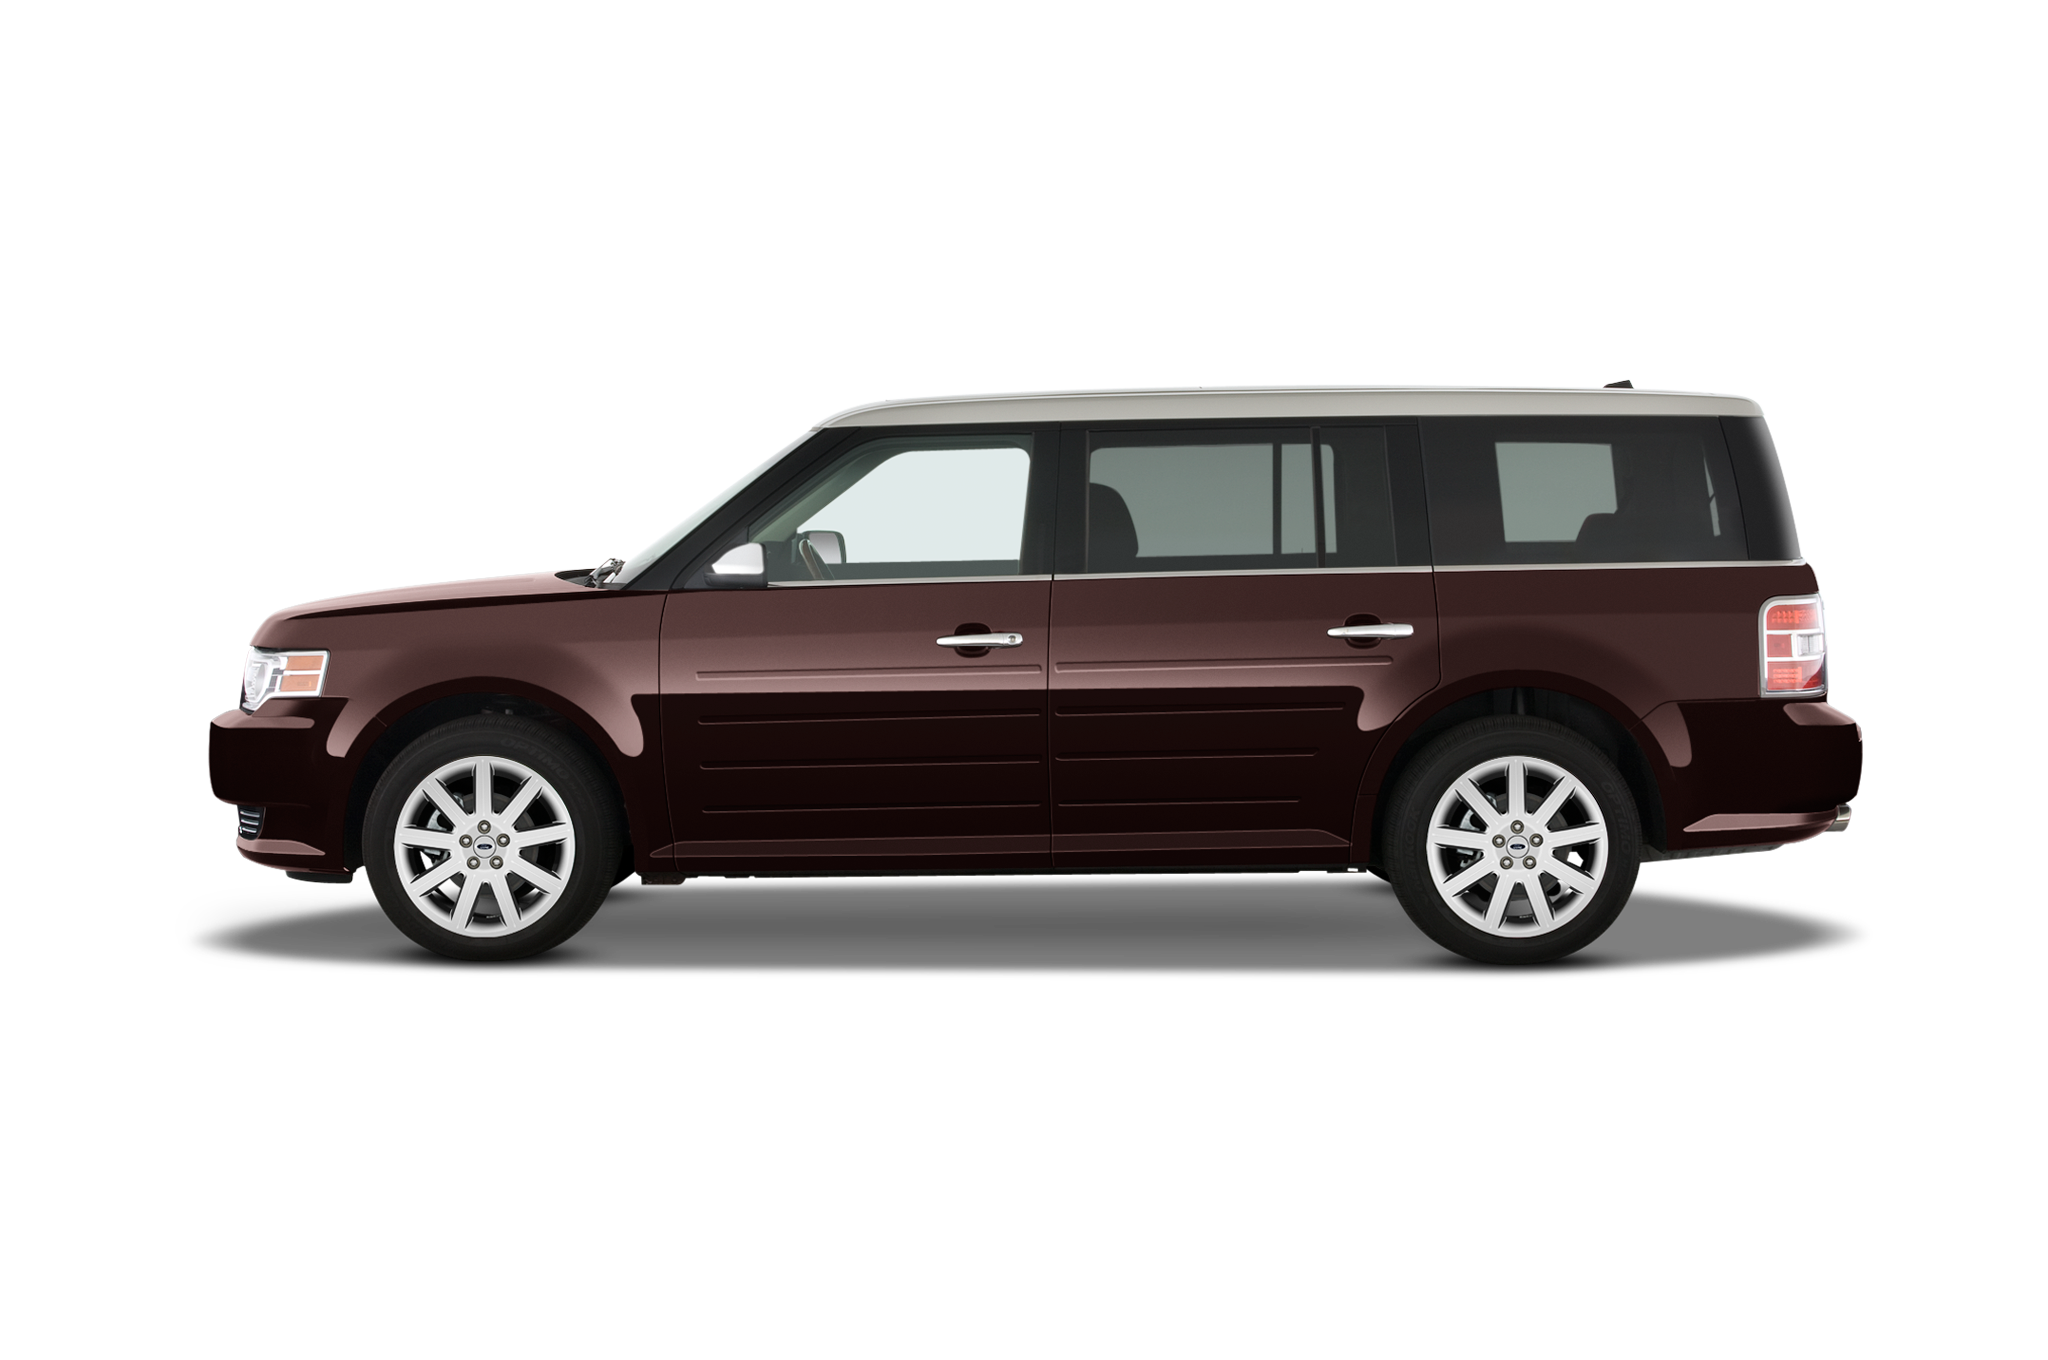 2010 ford flex ecoboost editors 39 notebook review automobile magazine. Black Bedroom Furniture Sets. Home Design Ideas